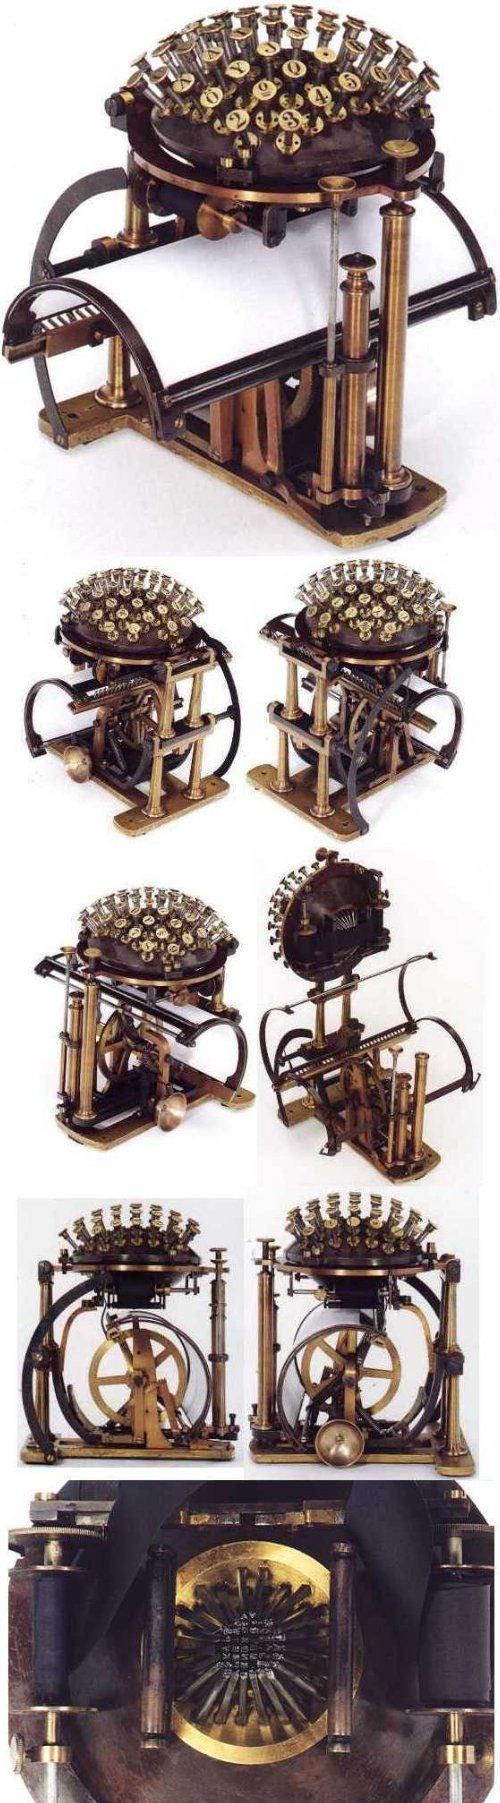 Real life steampunk: Friedrich Nietzsche's typewriter, the Malling Hansen Writing Ball, from various angles.